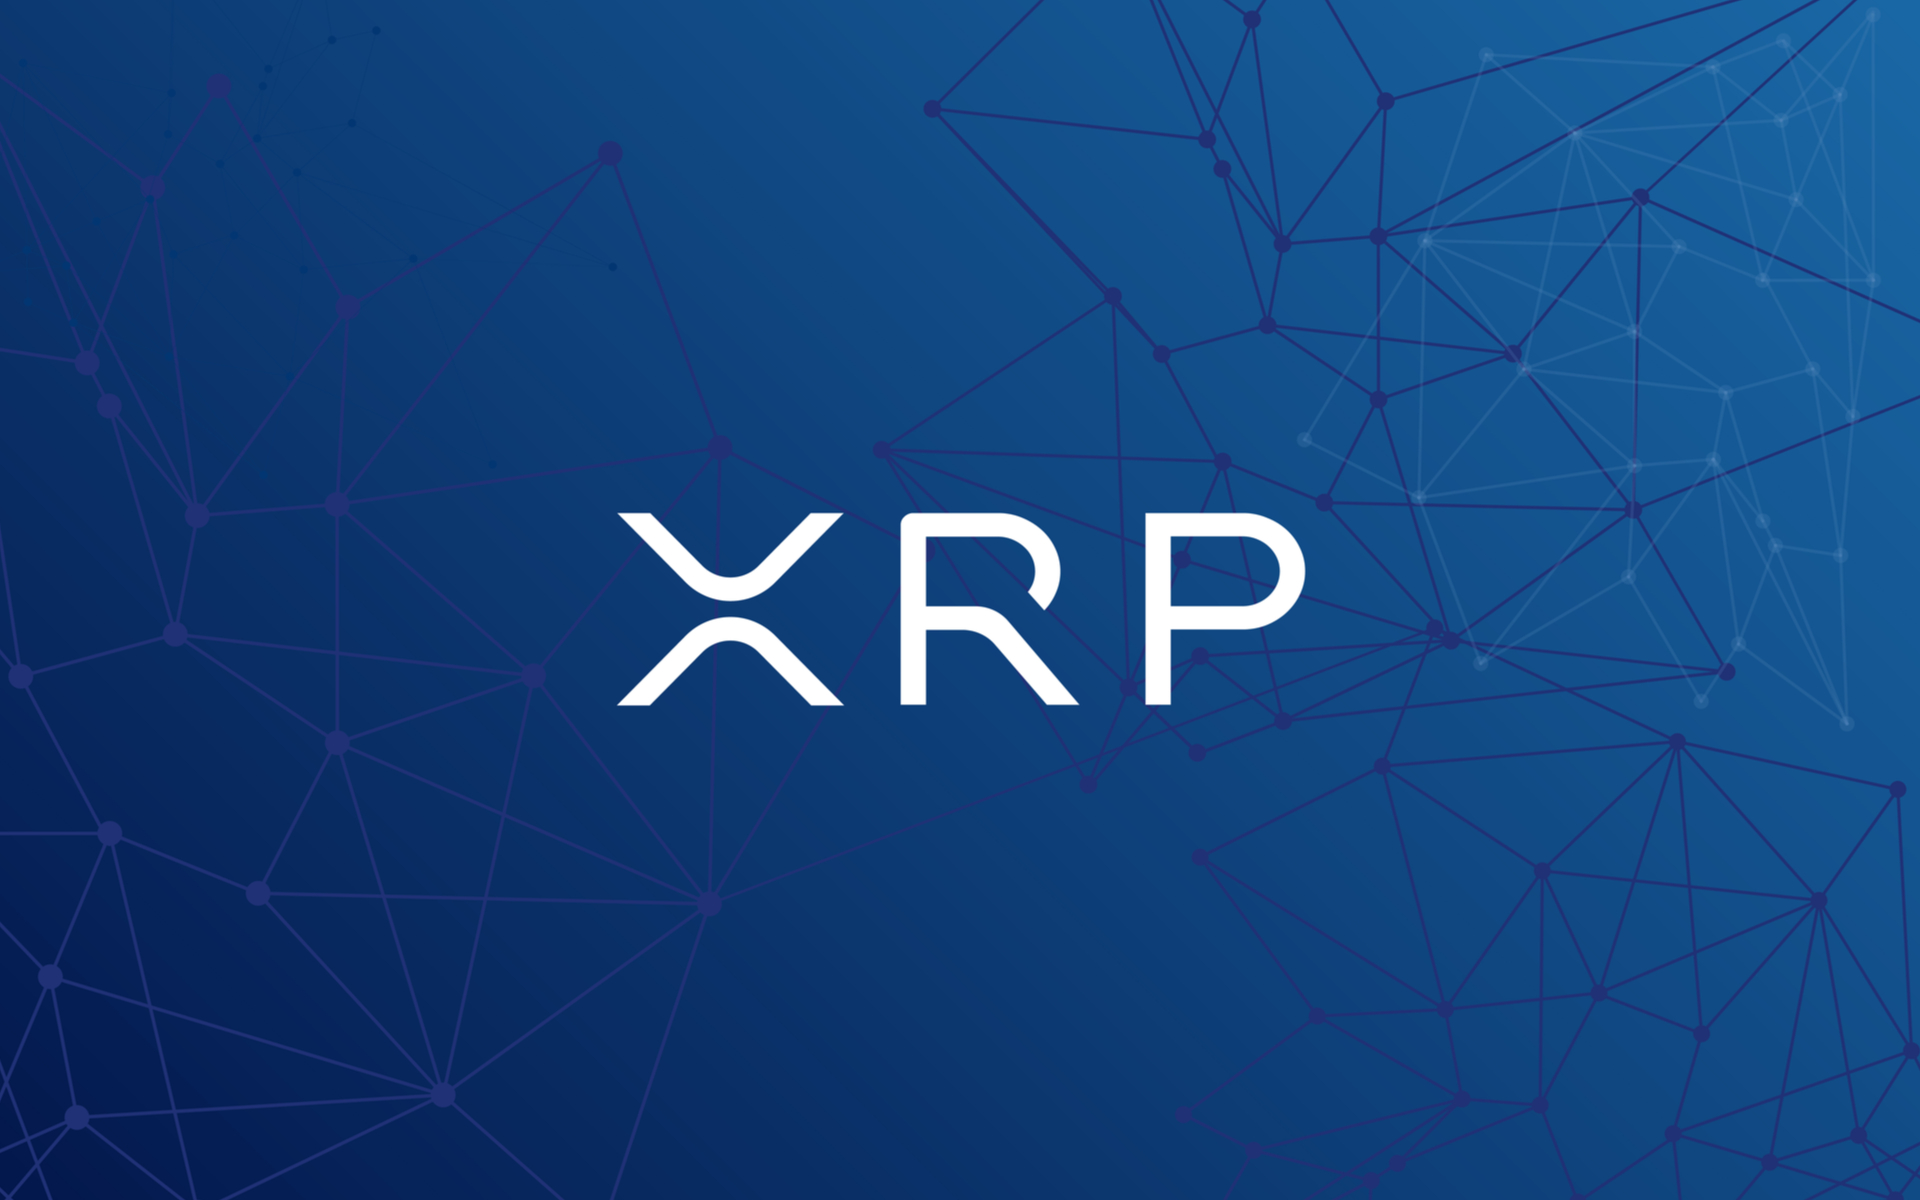 XRP Ledger Version 1.2.0 Announced Following JPM Coin FUD Storm